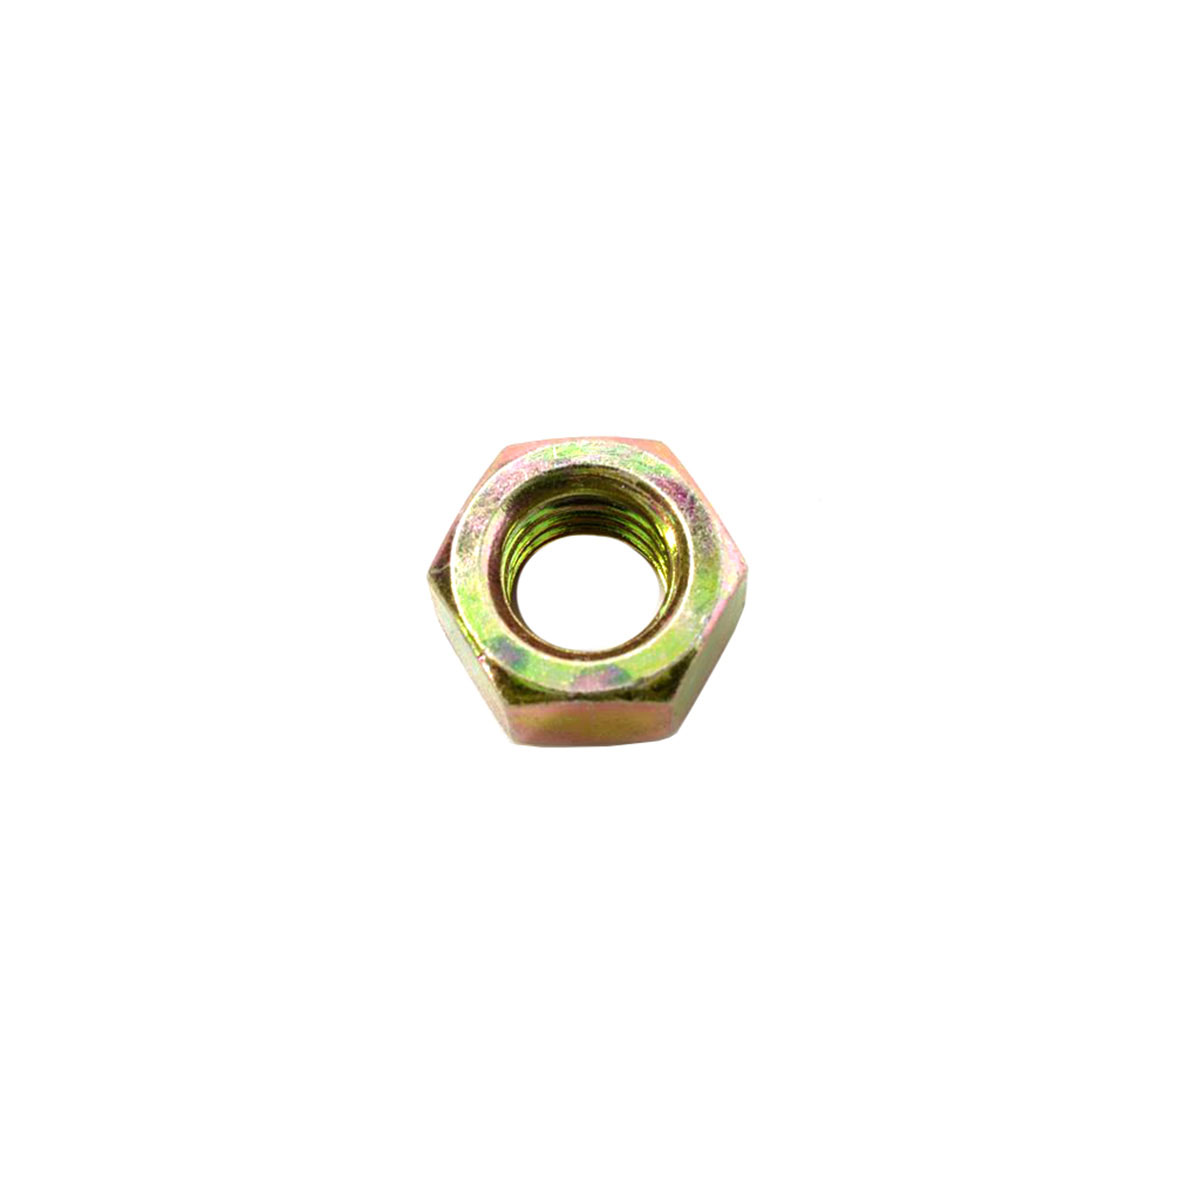 Scag Hex Nut 3/8-16 04020-04